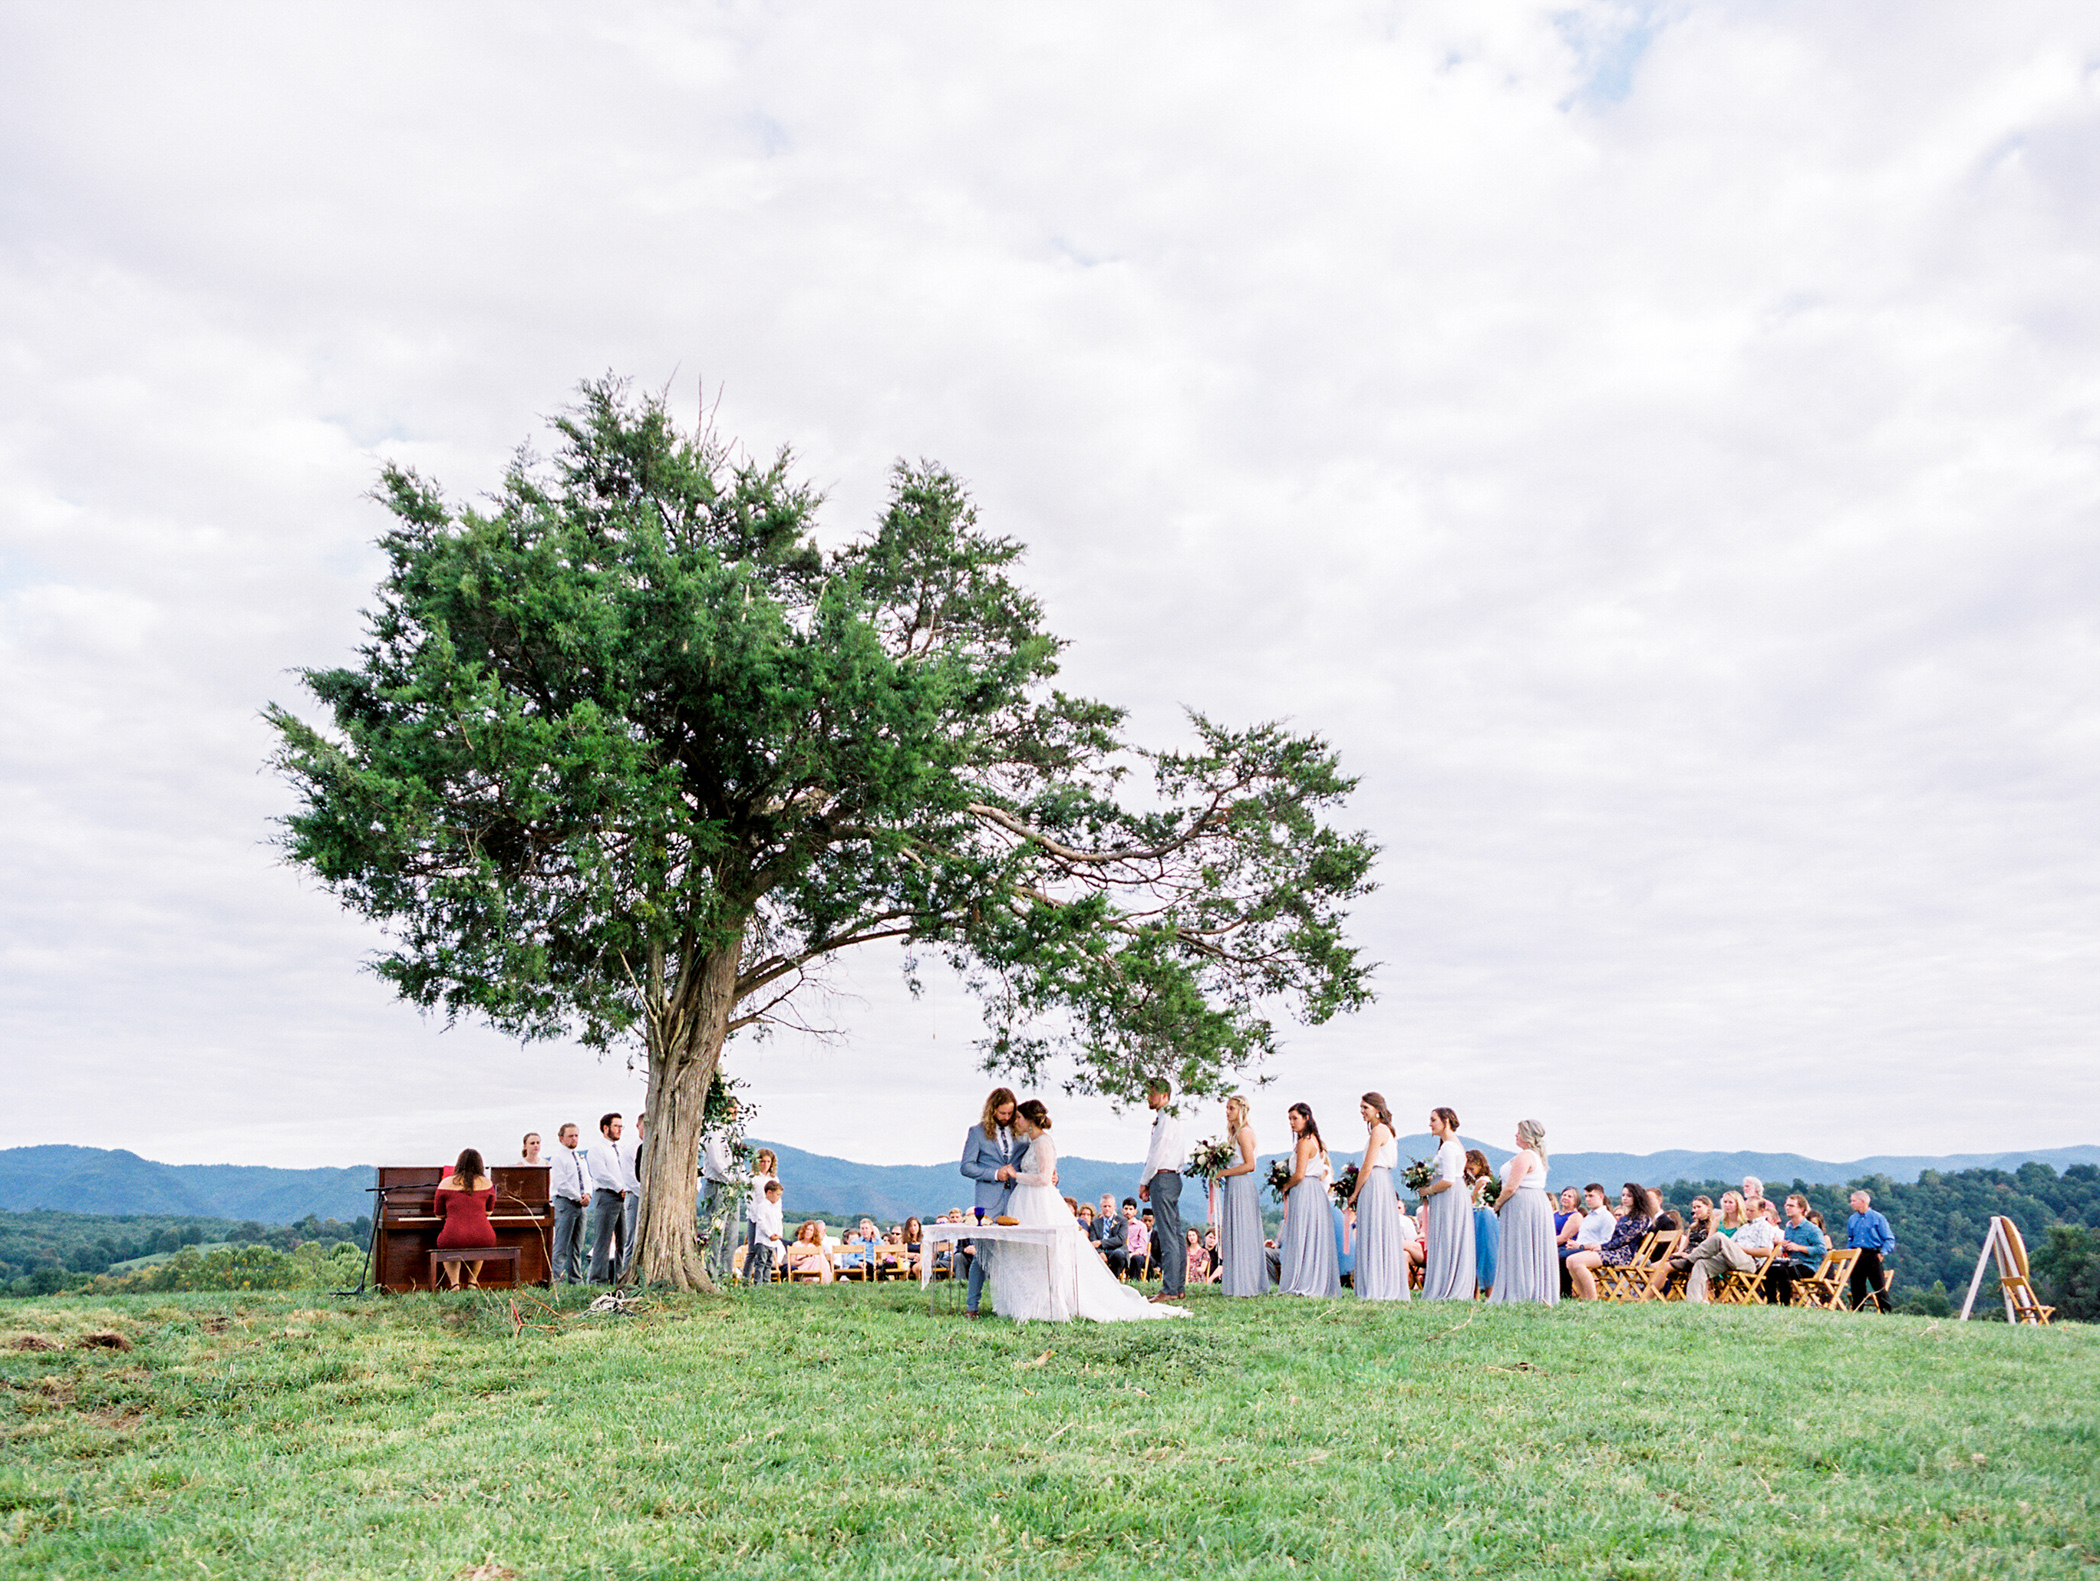 Charlotte-Film-Wedding_Photographer-heartstone-lodge-virginia-22.jpg